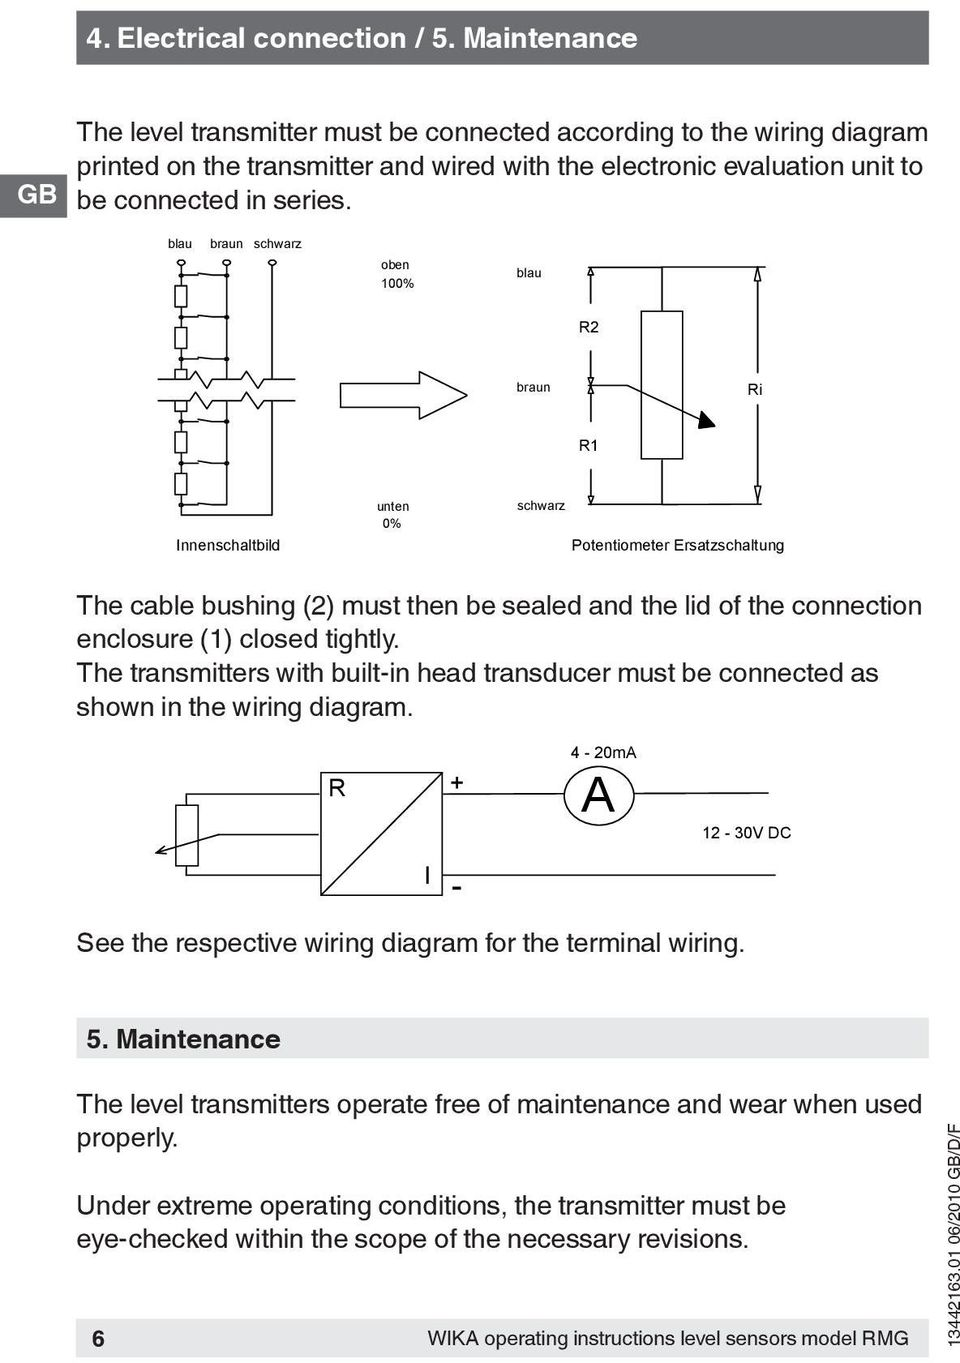 Operating Instructions Betriebsanleitung Mode D Emploi Pdf Level Transmitter Wiring Diagram Und Mit Der Nachzuschaltenden Auswerteelektro The Must Be Connected According To